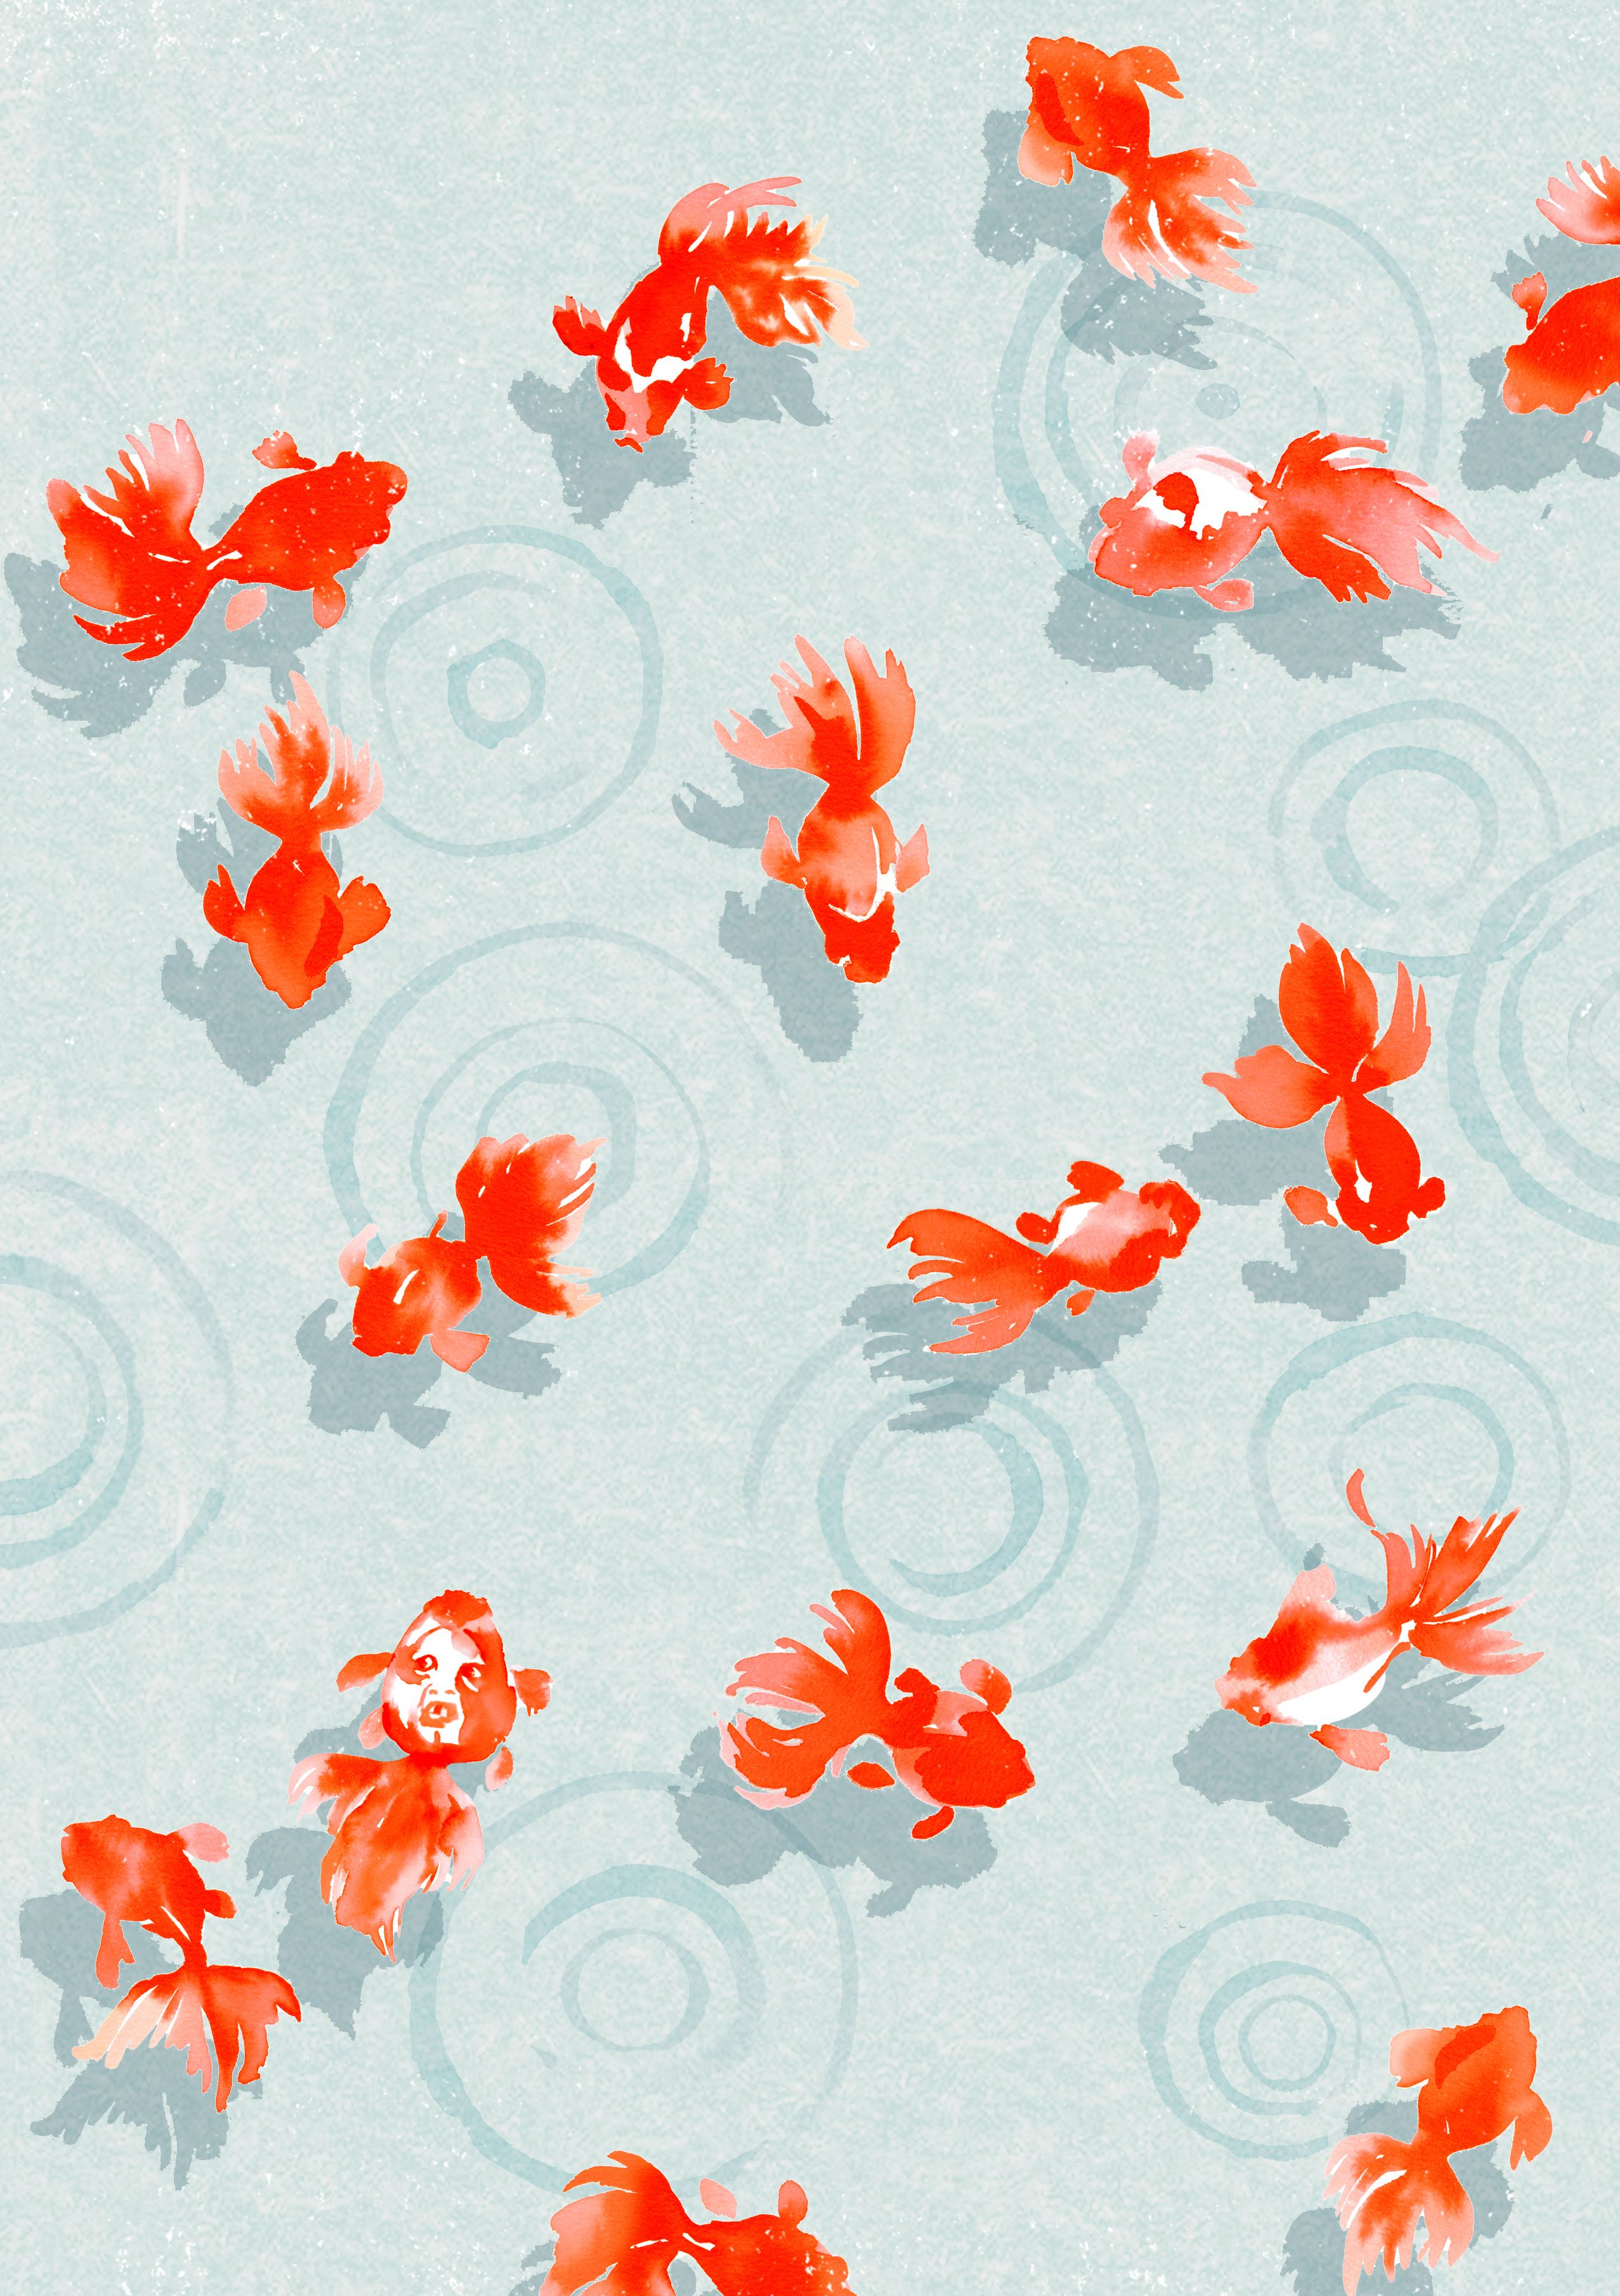 Pin By Amy Glamser On Happy In 2019 Fish Art Pond